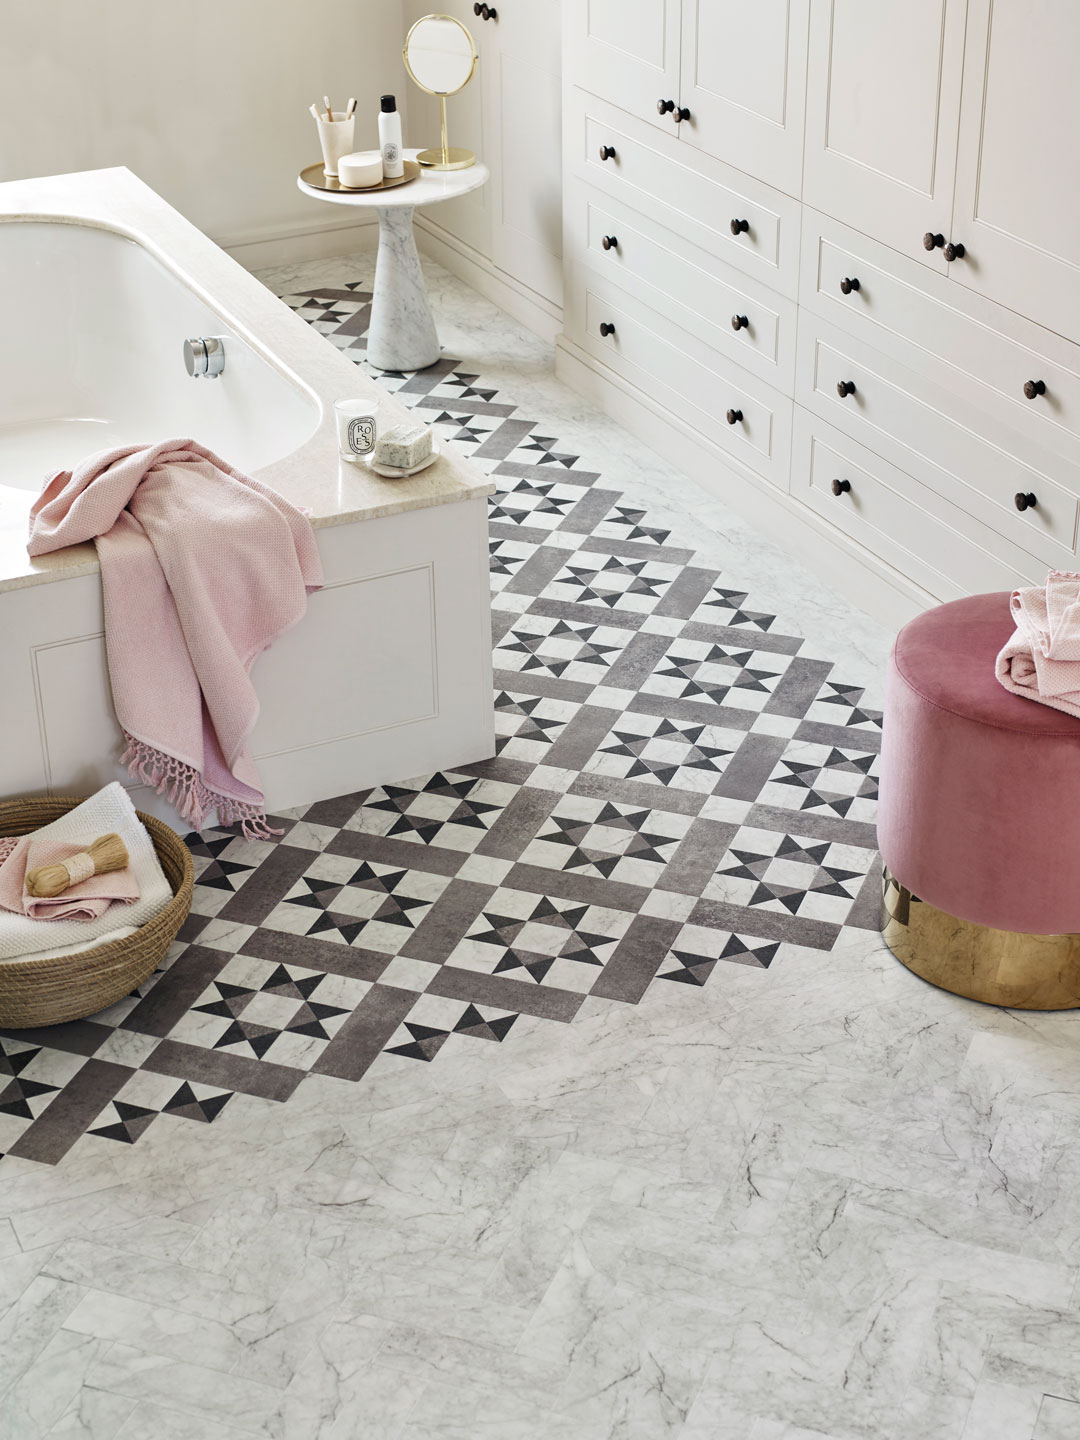 Original pattern from flooring pioneers room image corona argent is laid with marble parquet in a luxe bathroom space